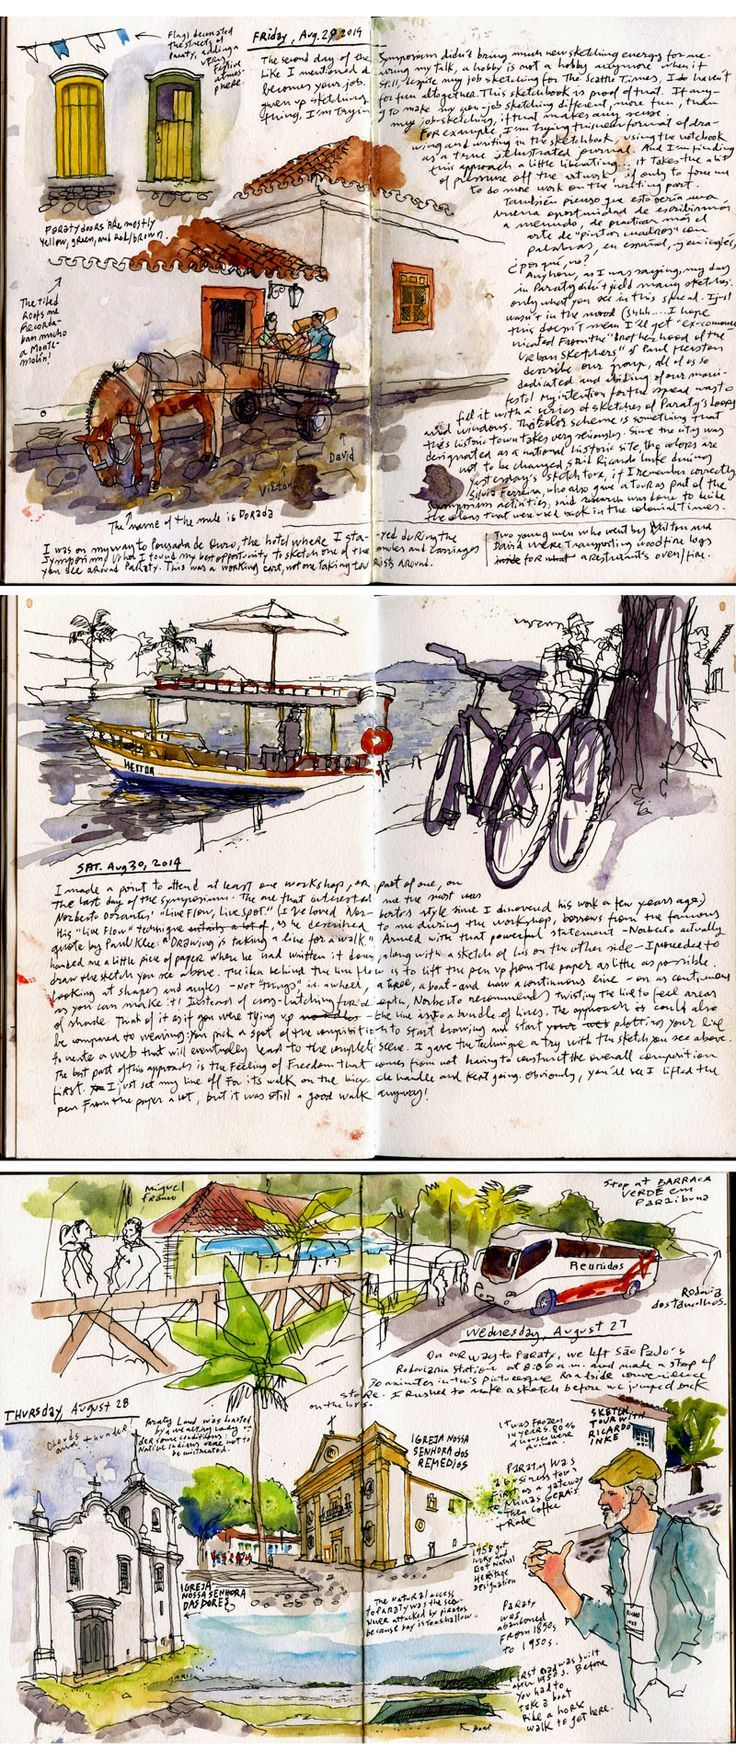 Art journal: pictures with short descriptions or stories or personal thoughts